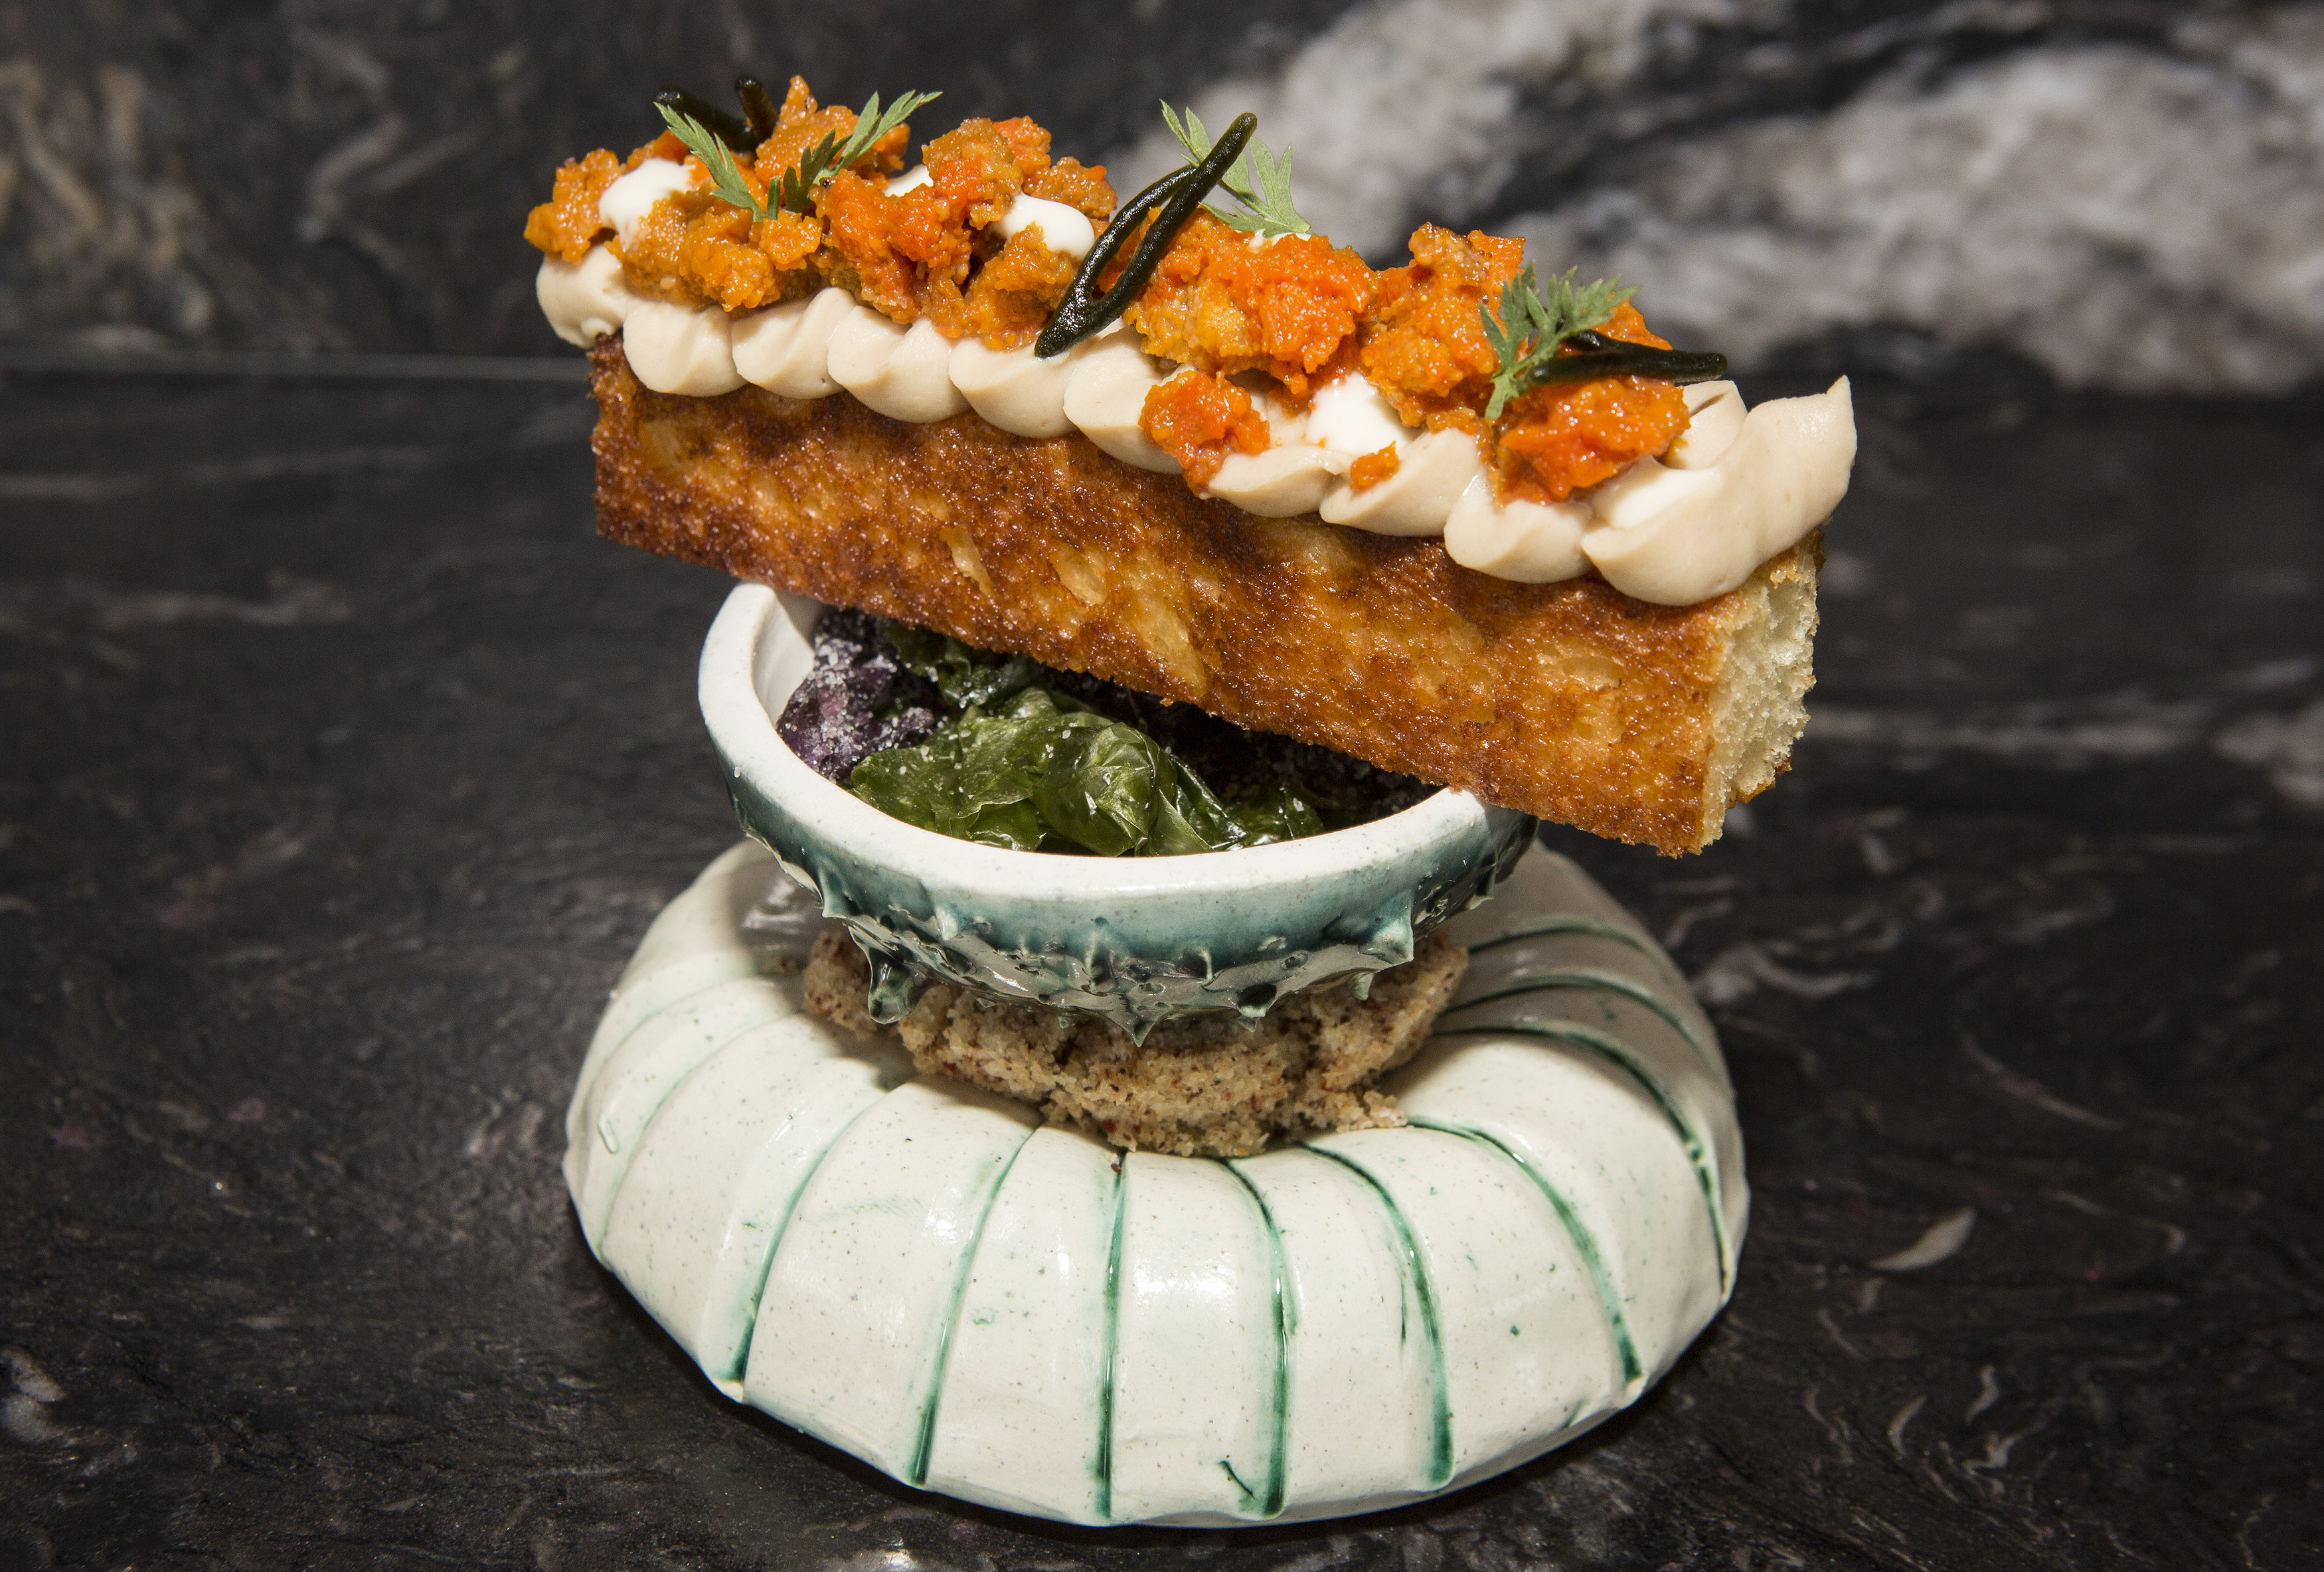 A tall, narrow strip of toast topped with sea urchin